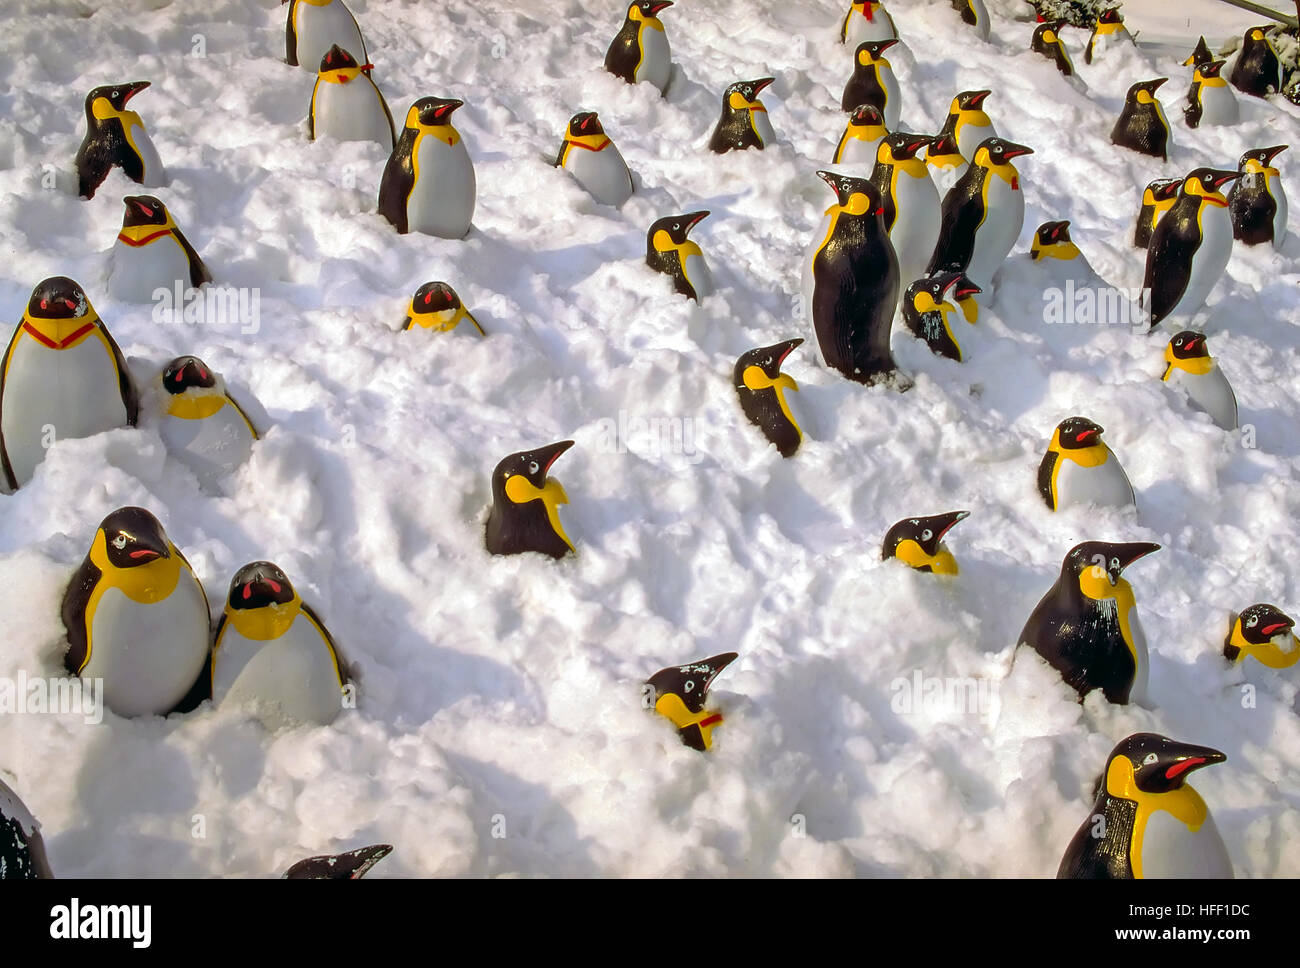 Plastic Emperor penguins, Aptenodytes forstein, sticking out of a snow bank. - Stock Image